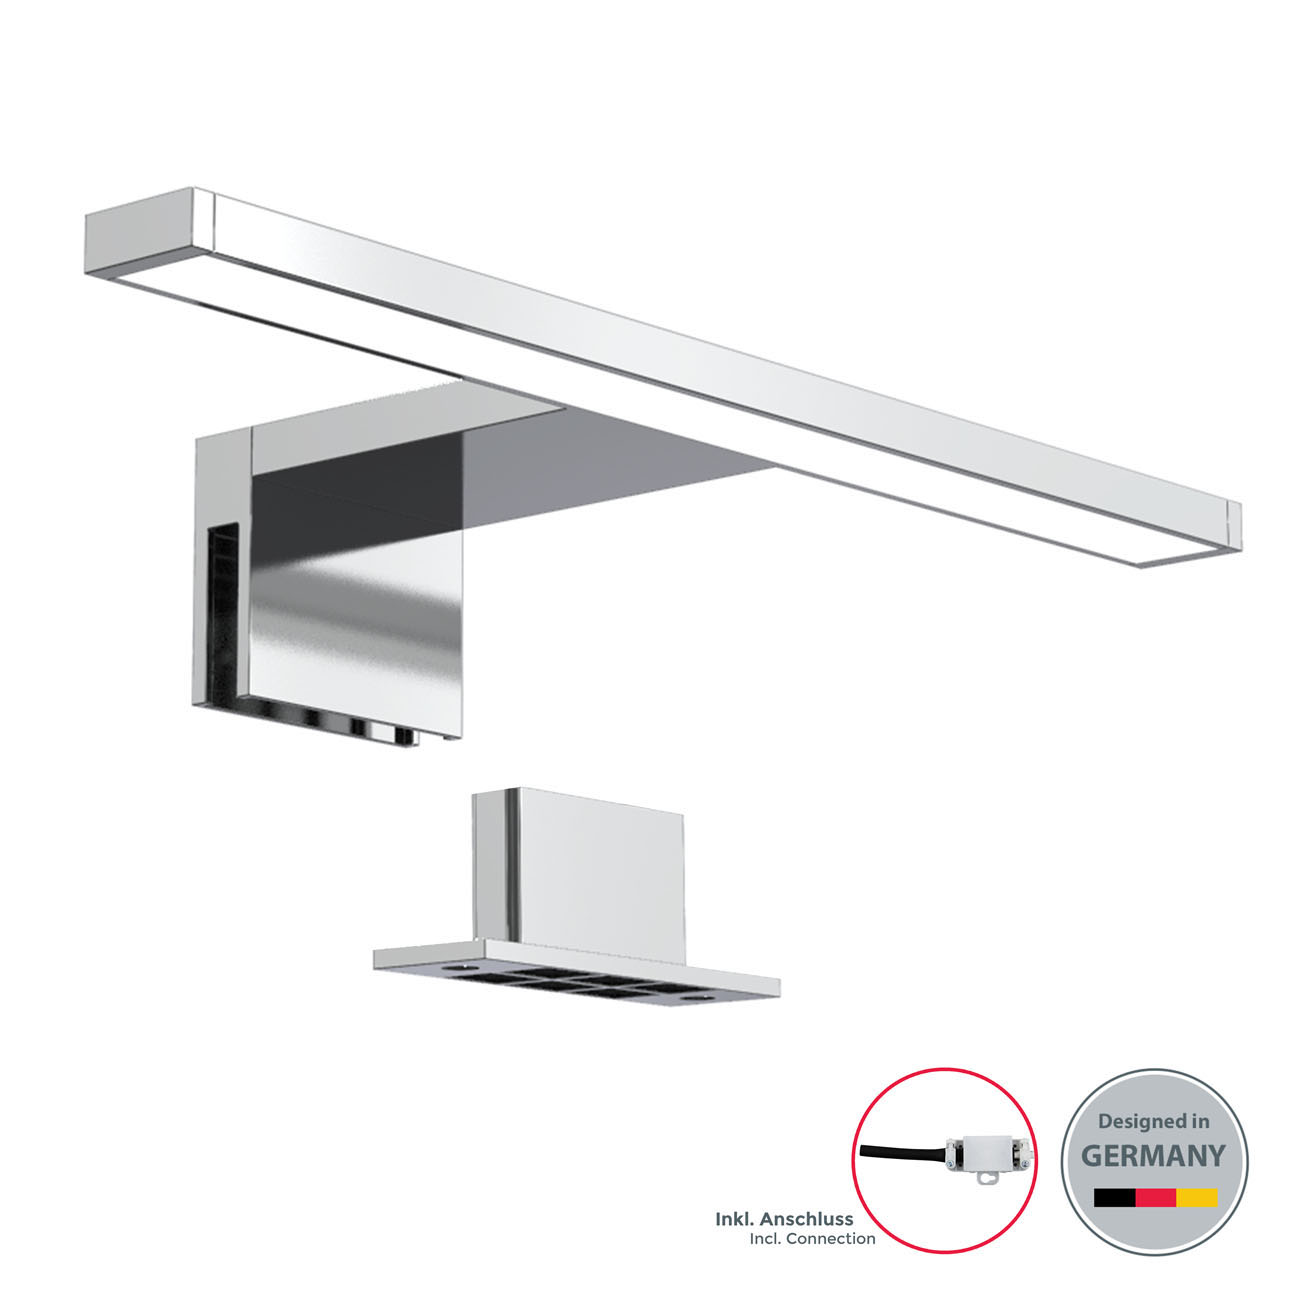 LED Spiegelleuchte Badlampe IP44 neutral-weiß S chrom - 3